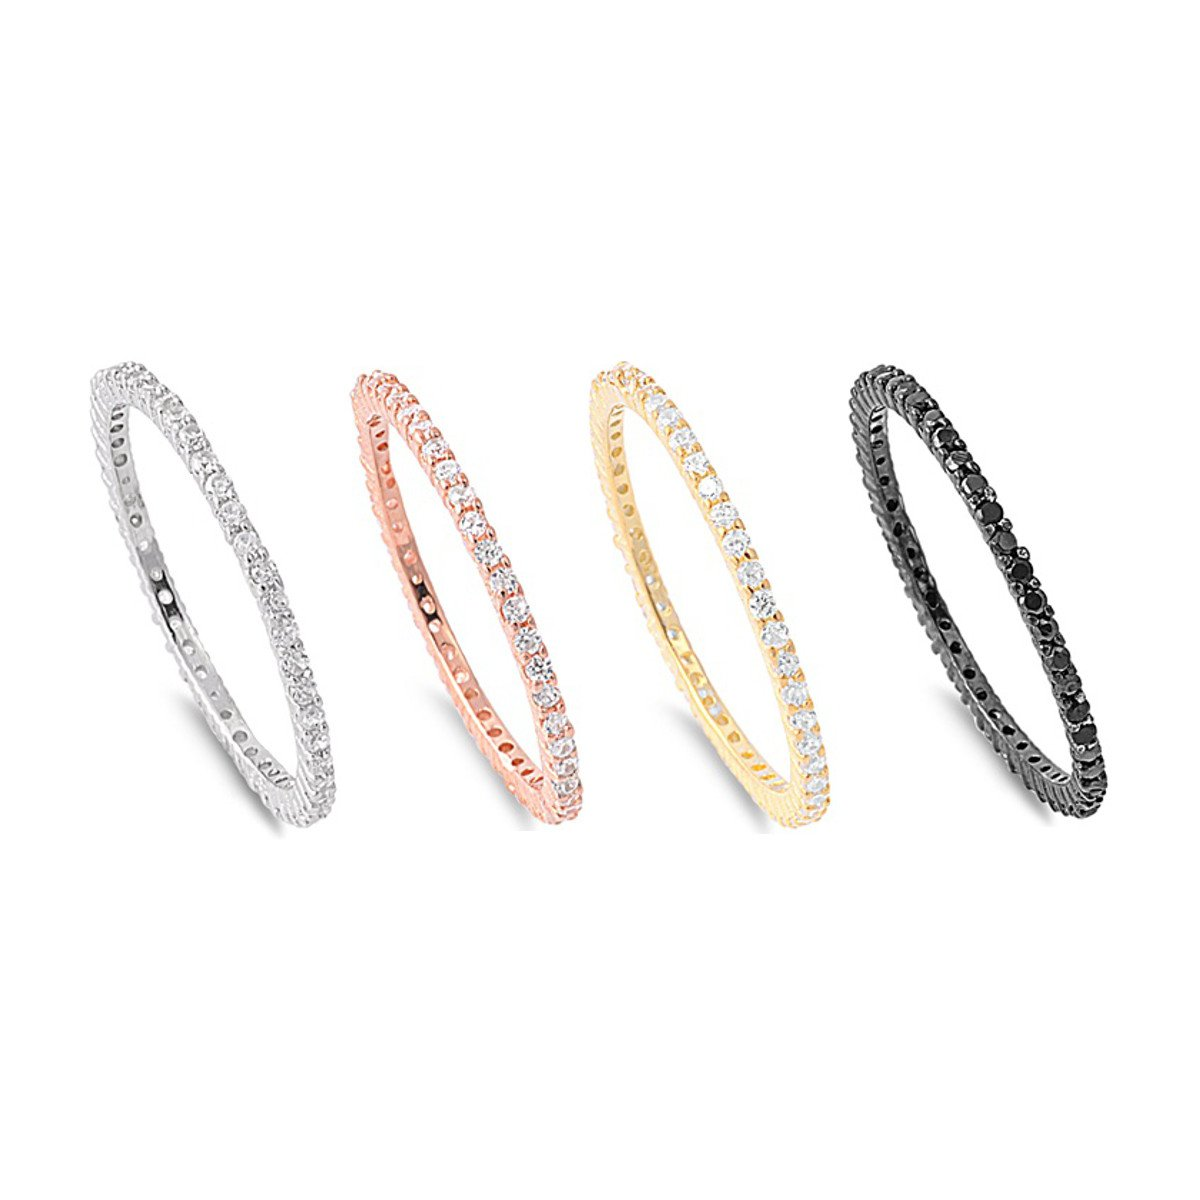 THIN STACKABLE ETERNITY BAND RING Rose Yellow Gold Black Sterling Silver 1.5mm S